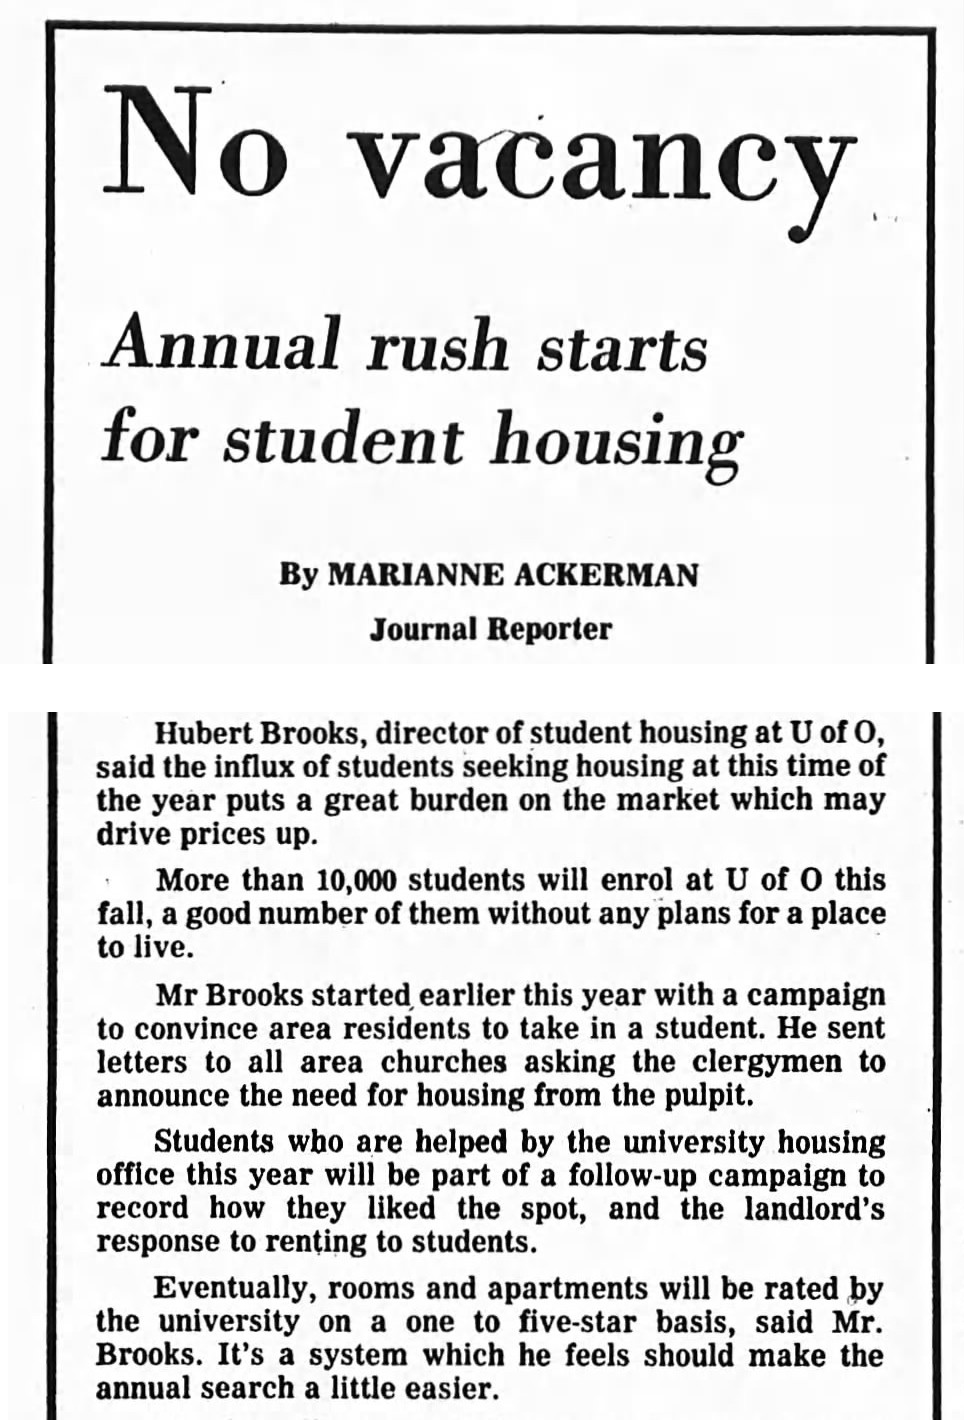 Image: Extract from Ottawa Journal 21 Aug 1976 article on University of Ottawa Housing Issues